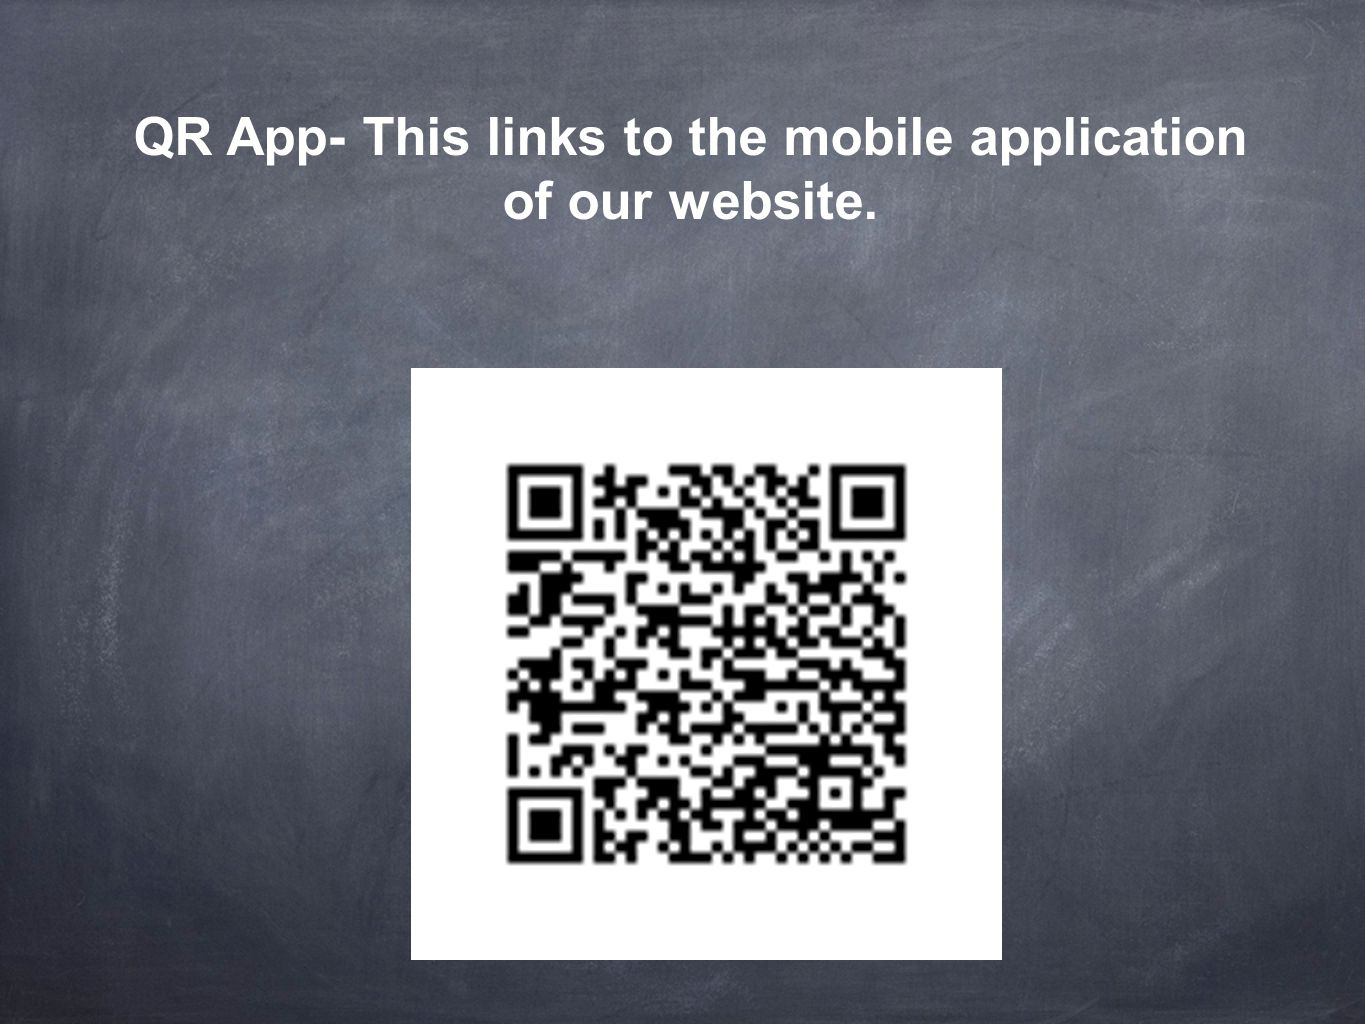 QR App- This links to the mobile application of our website.